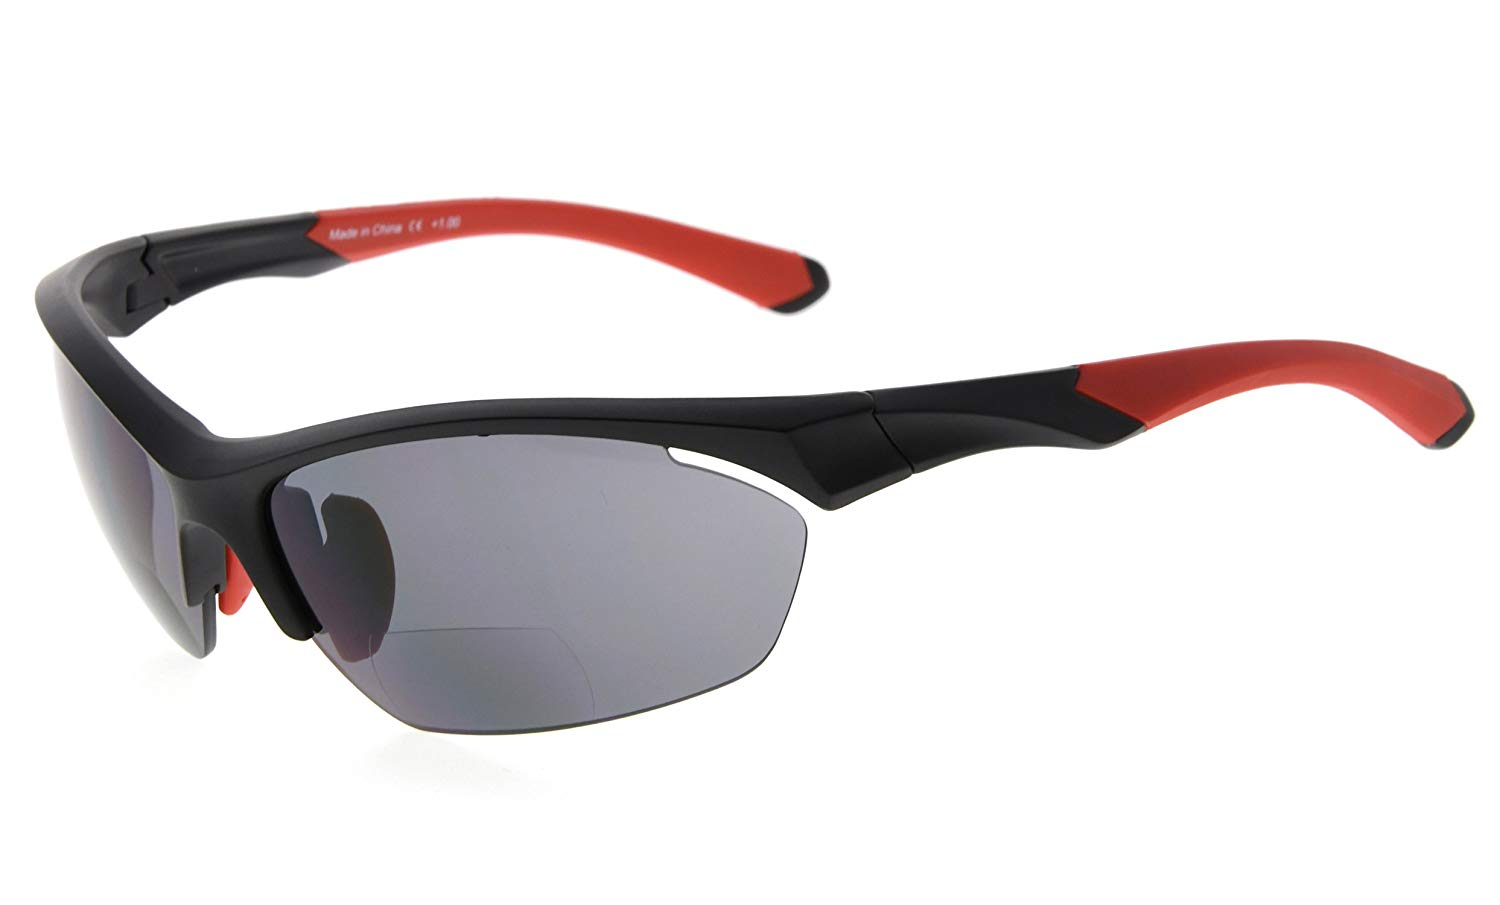 97db990a8 Eyekepper Bifocal Sunglasses UV Protection Quality TR90 Frame Half-Rimless  Sports Readers Men Black-Red SG902-Bifocal